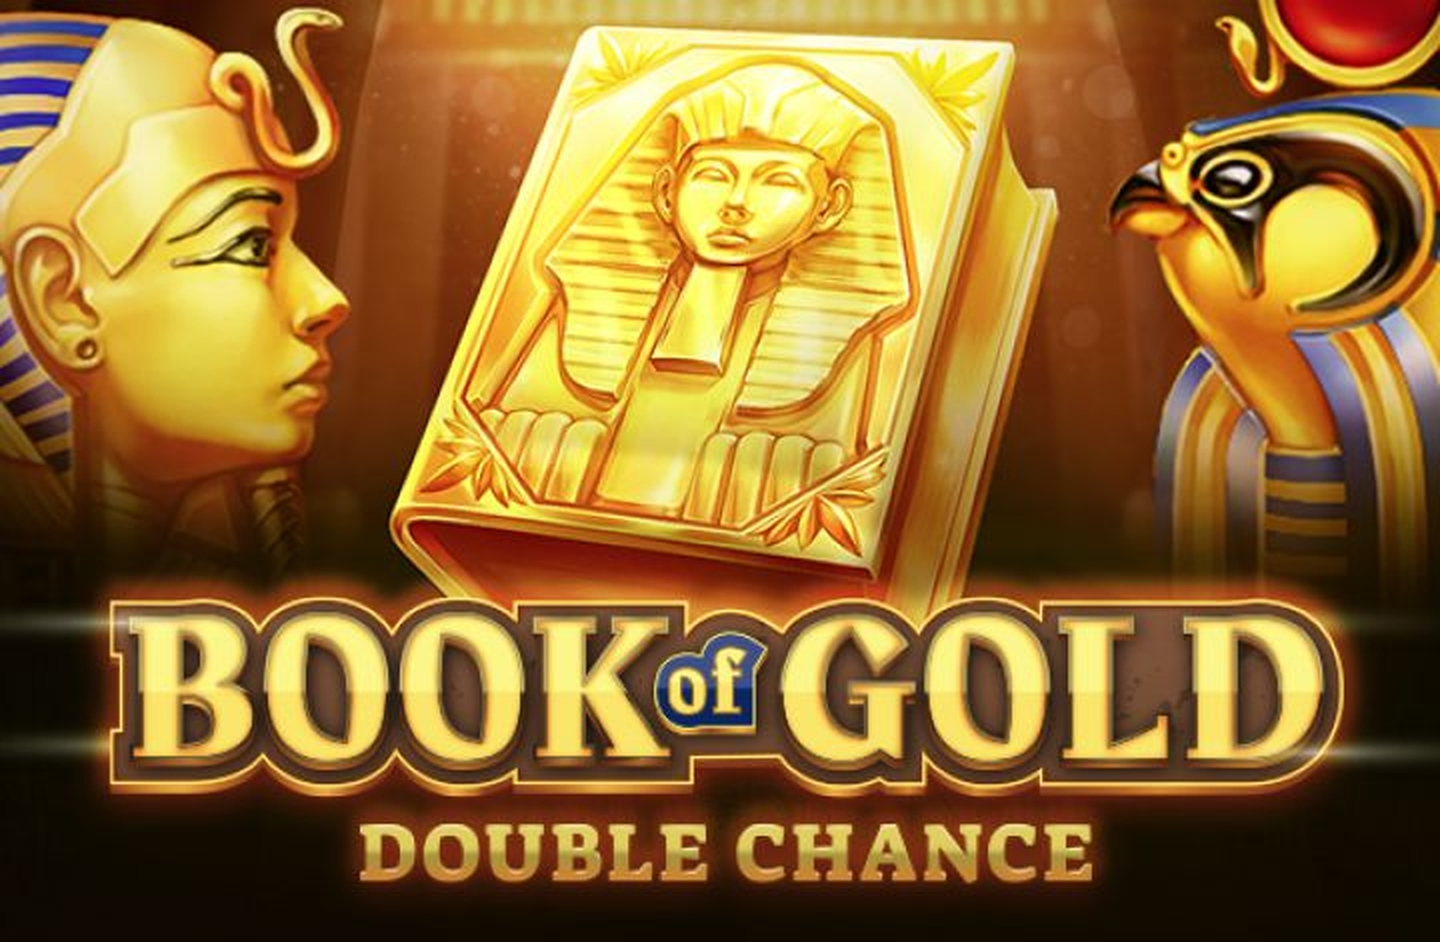 The Book of Gold: Double Chance Online Slot Demo Game by Playson